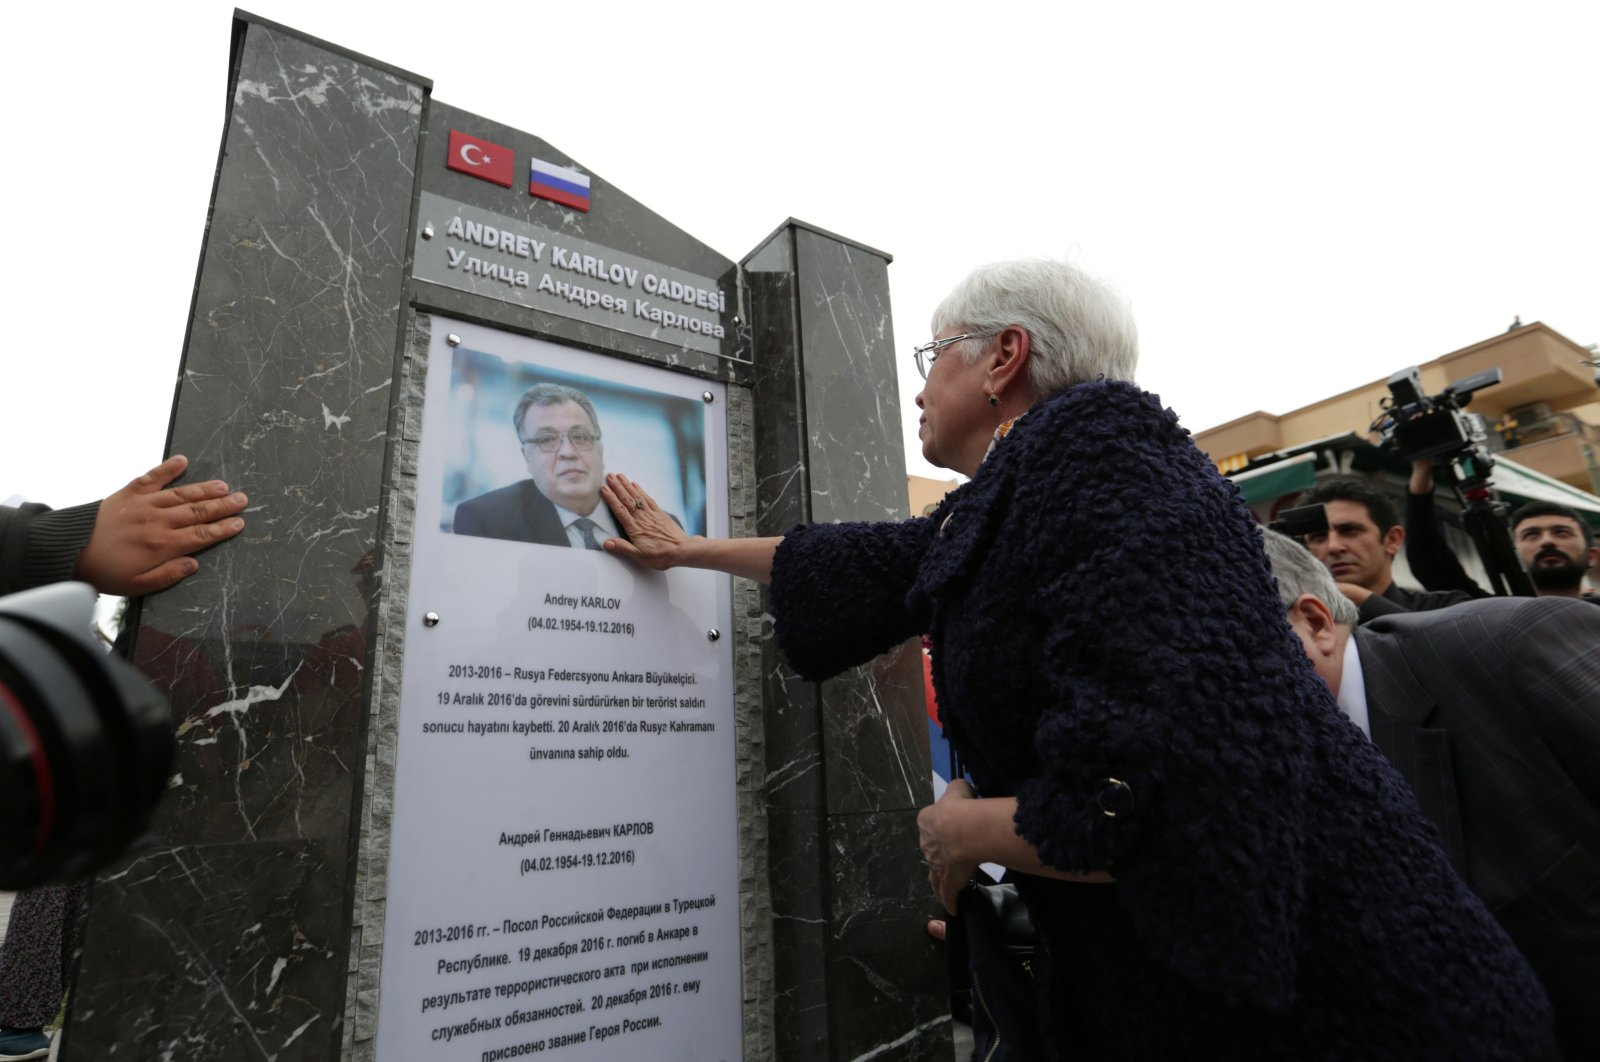 Marina Karlova, the widow of Andrei Karlov, touches a photo of the late envoy at a ceremony to name a street after him, in Antalya, southern Turkey, March 22, 2018. (REUTERS PHOTO)